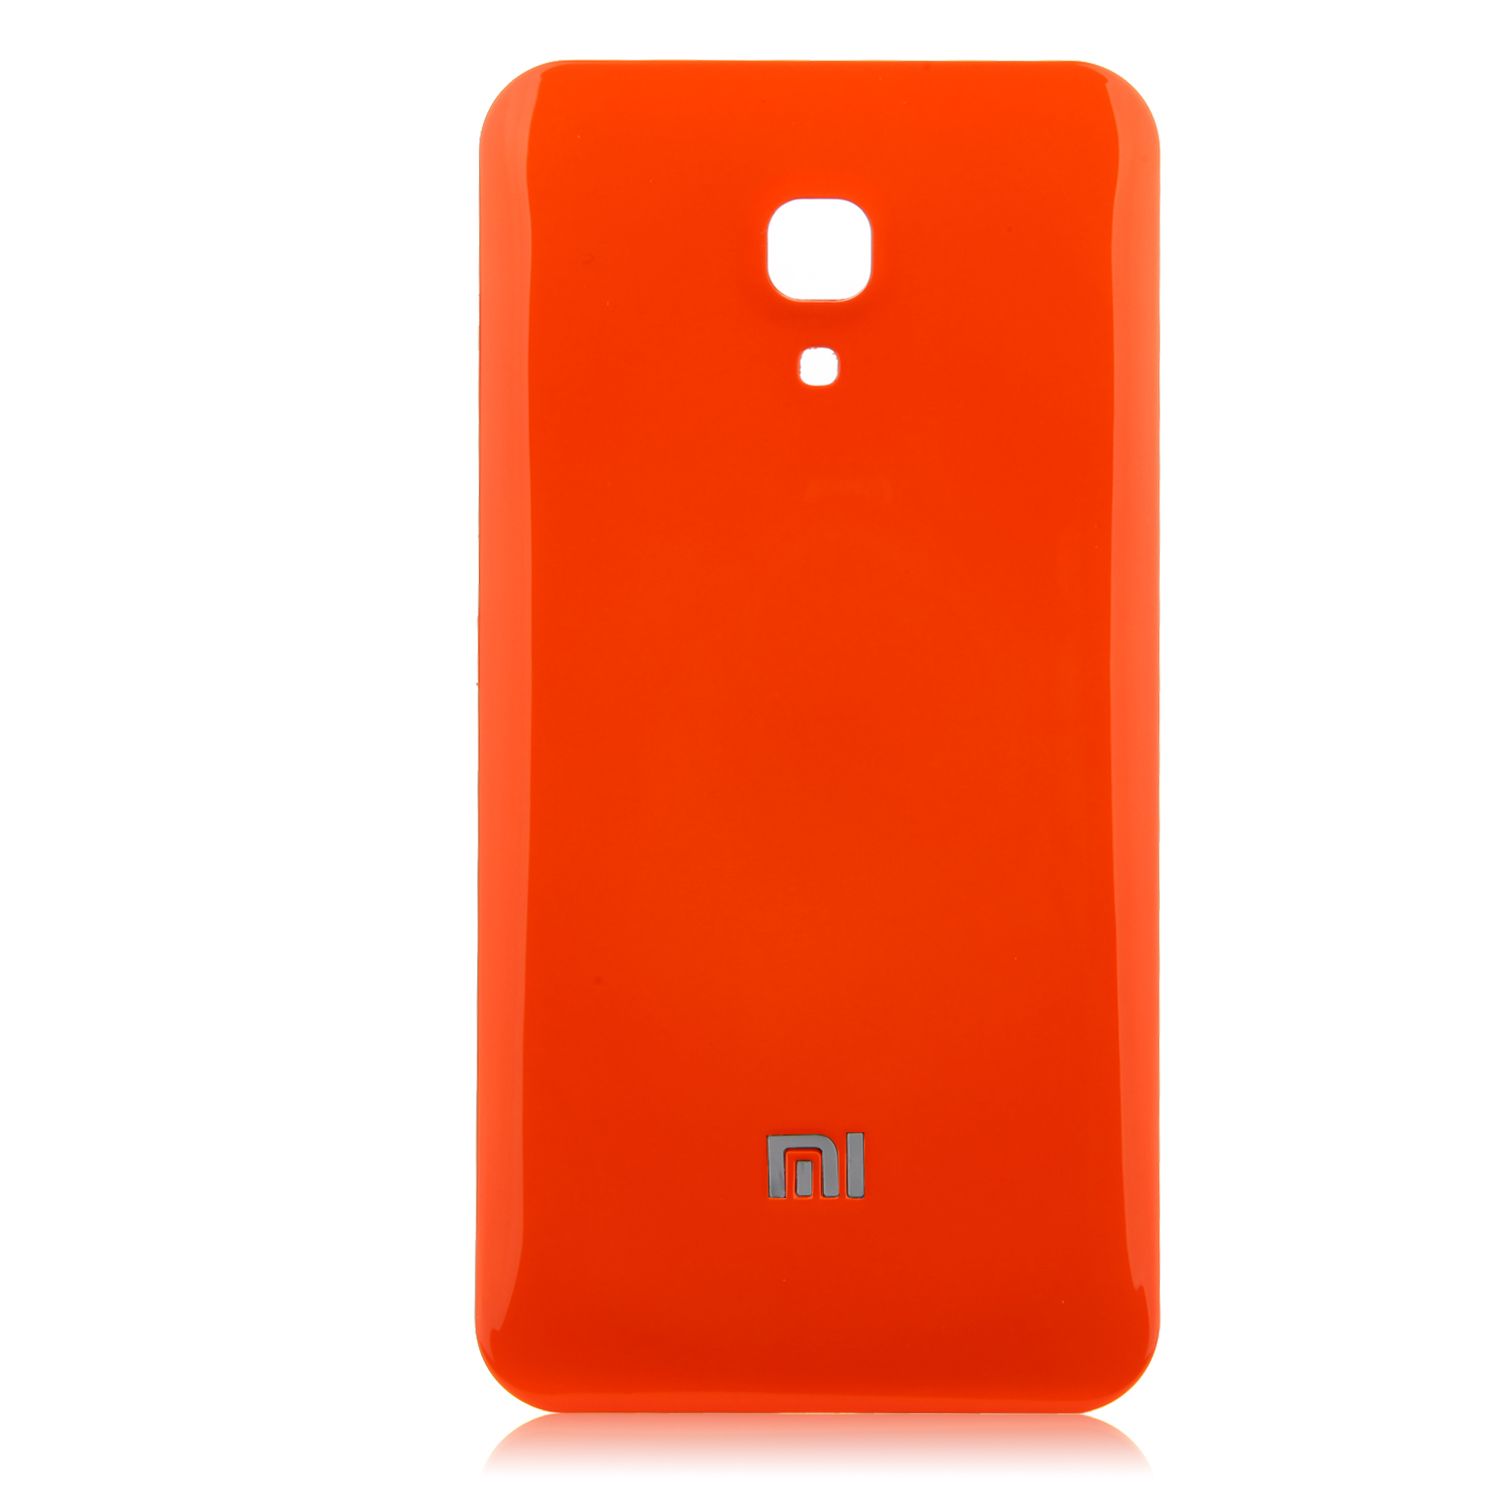 Replacement Battery Cover Back Case for XIAOMI 2A Smartphone Orange